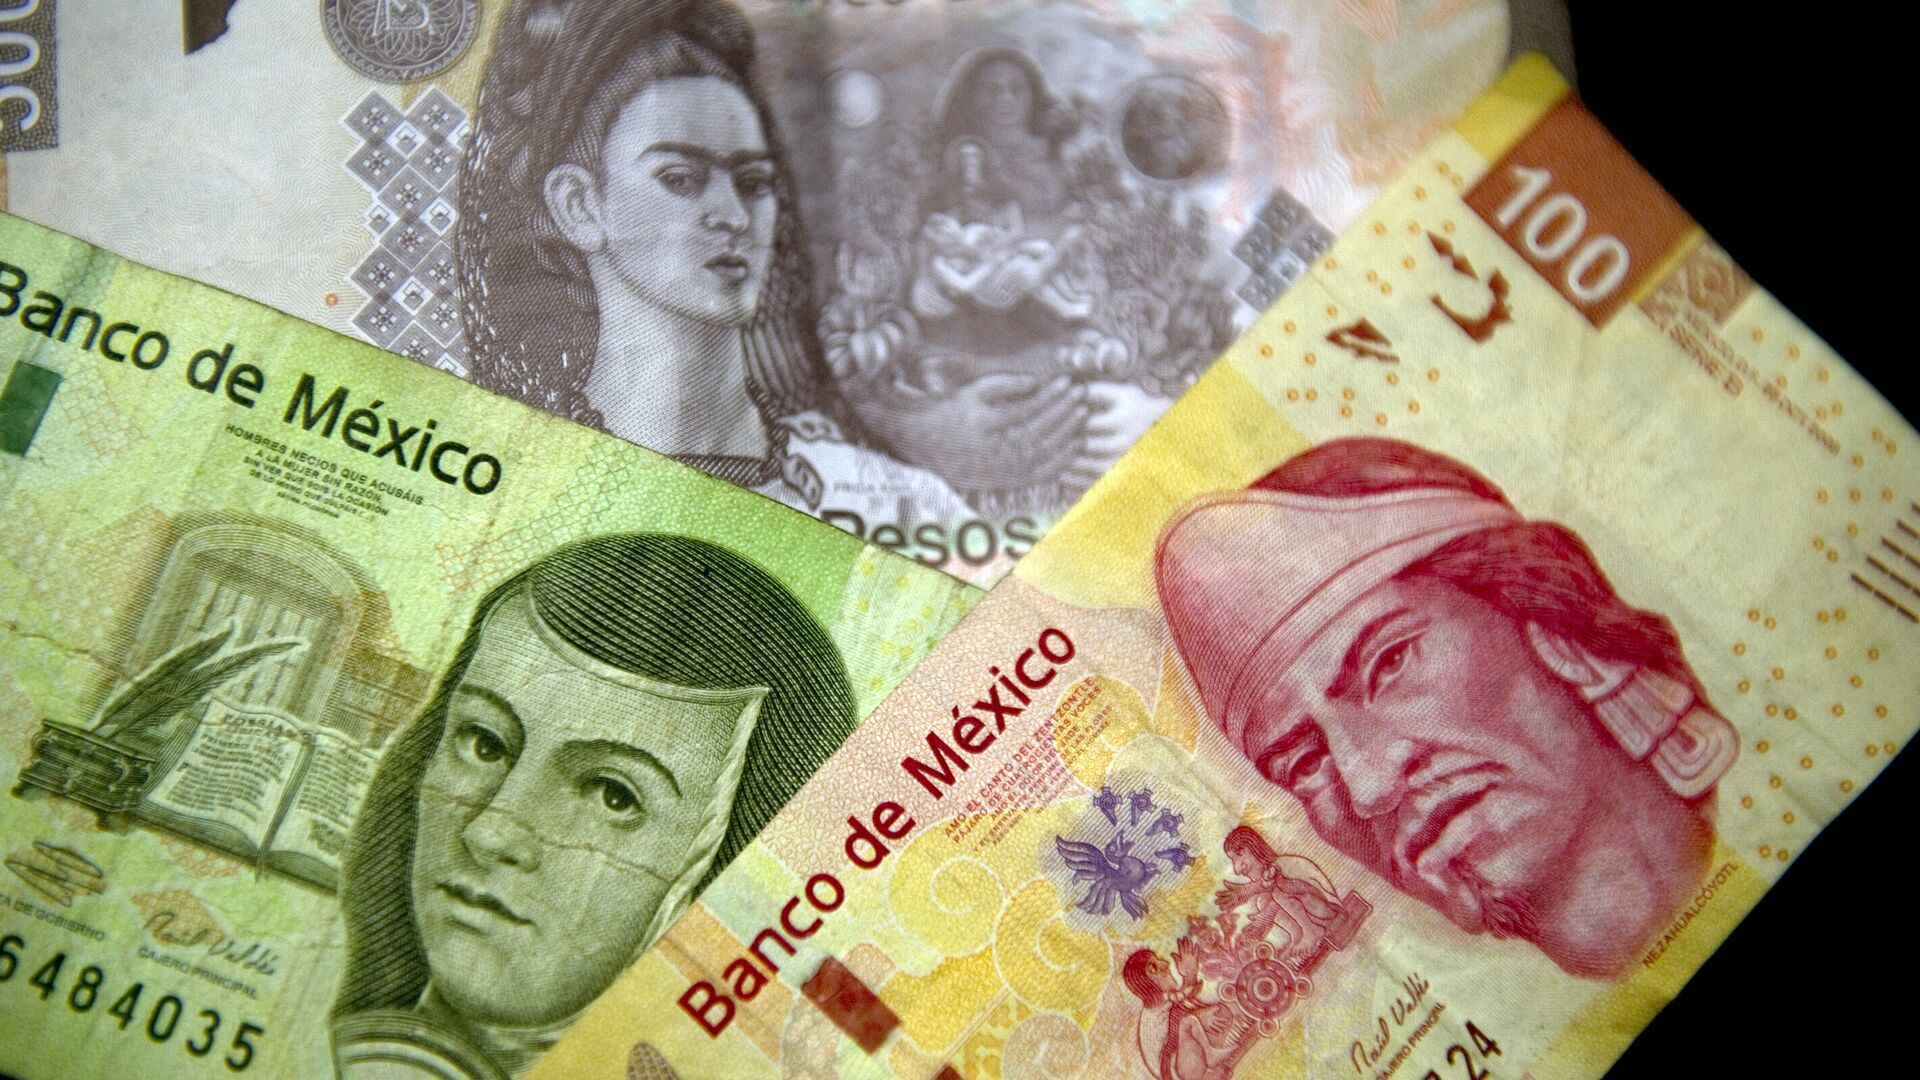 Picture of Mexican Peso notes of different denominations taken on December 27, 2011 in Mexico City - Sputnik Mundo, 1920, 03.09.2021